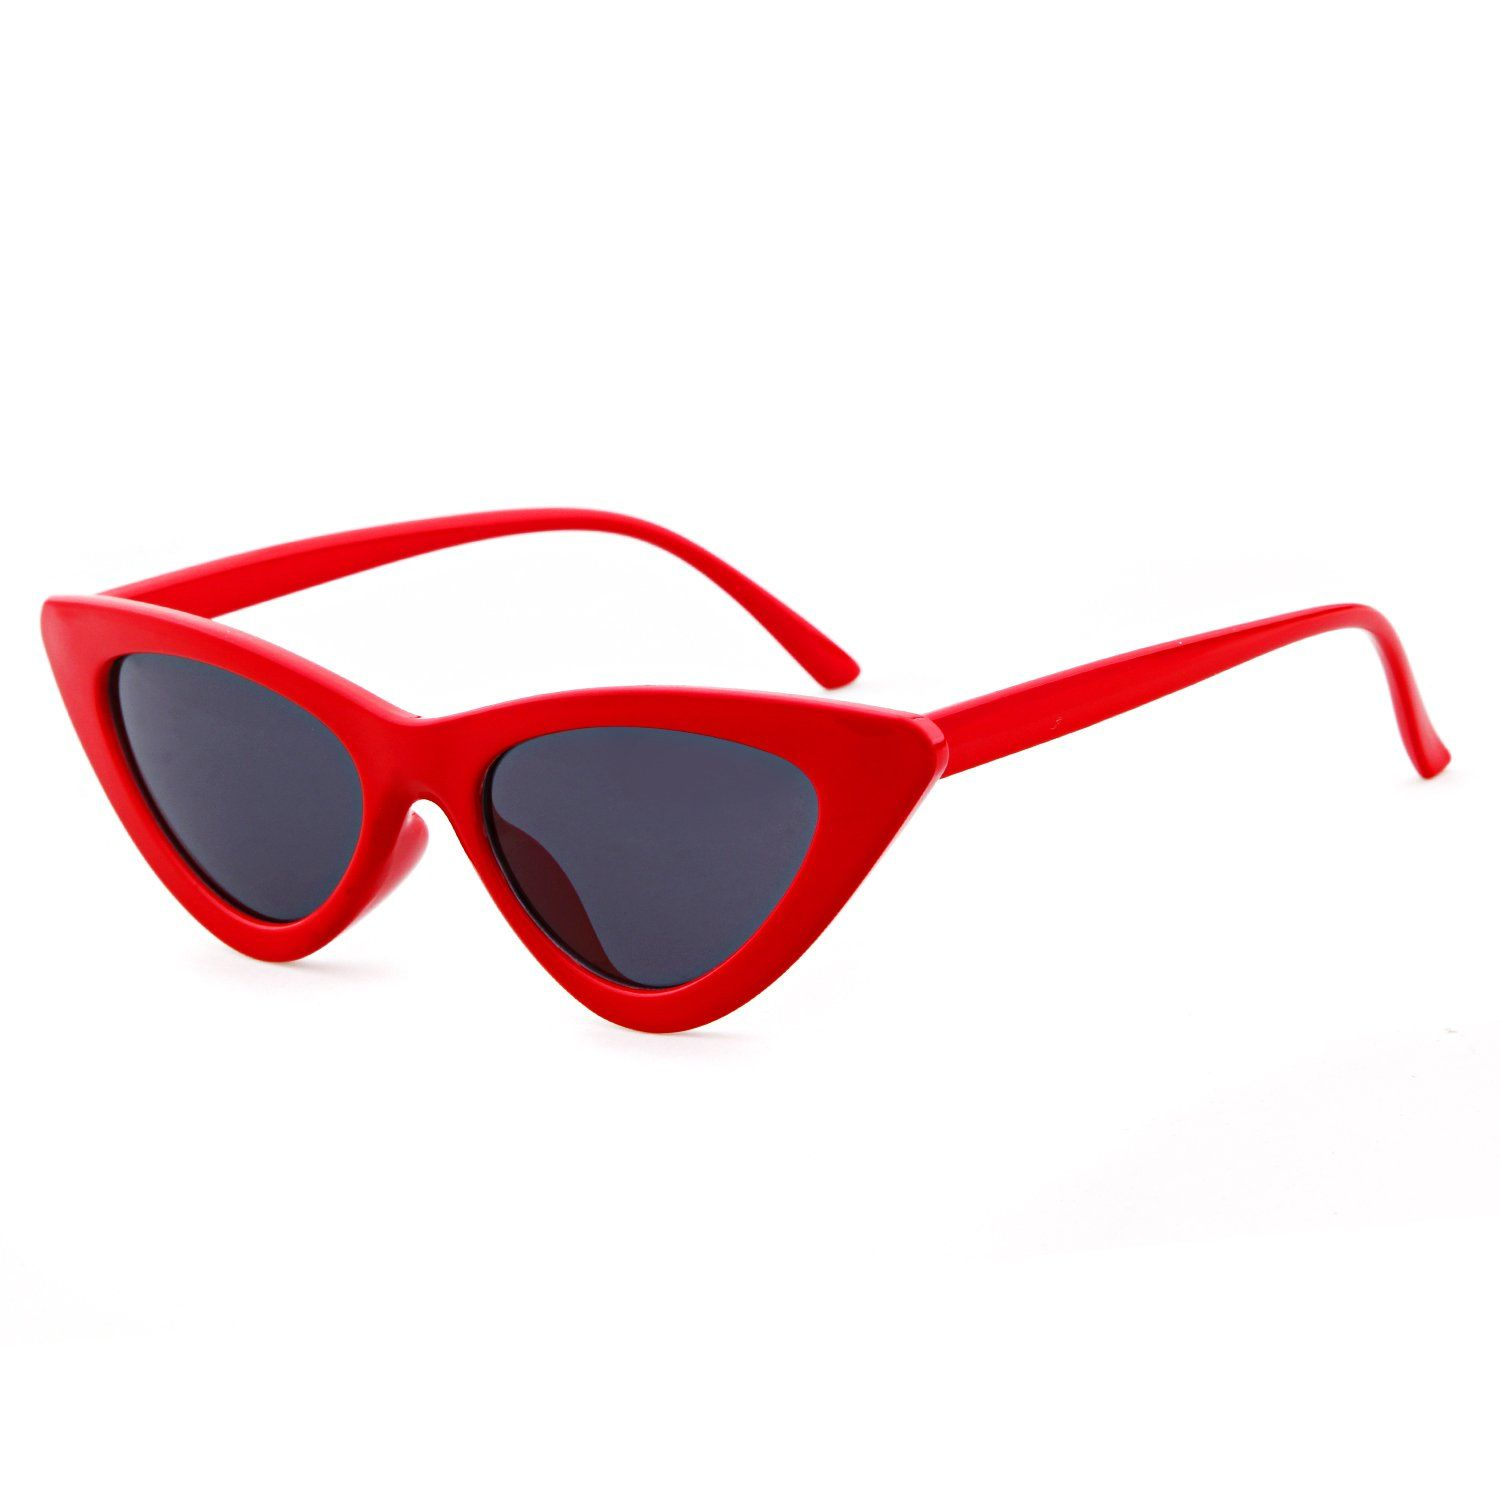 0a6e03556f Gifiore Retro Vintage Cat Eye Sunglasses for Women Clout Goggles Plastic  Frame Glasses BlackandRedandPink 51   To view further for this item